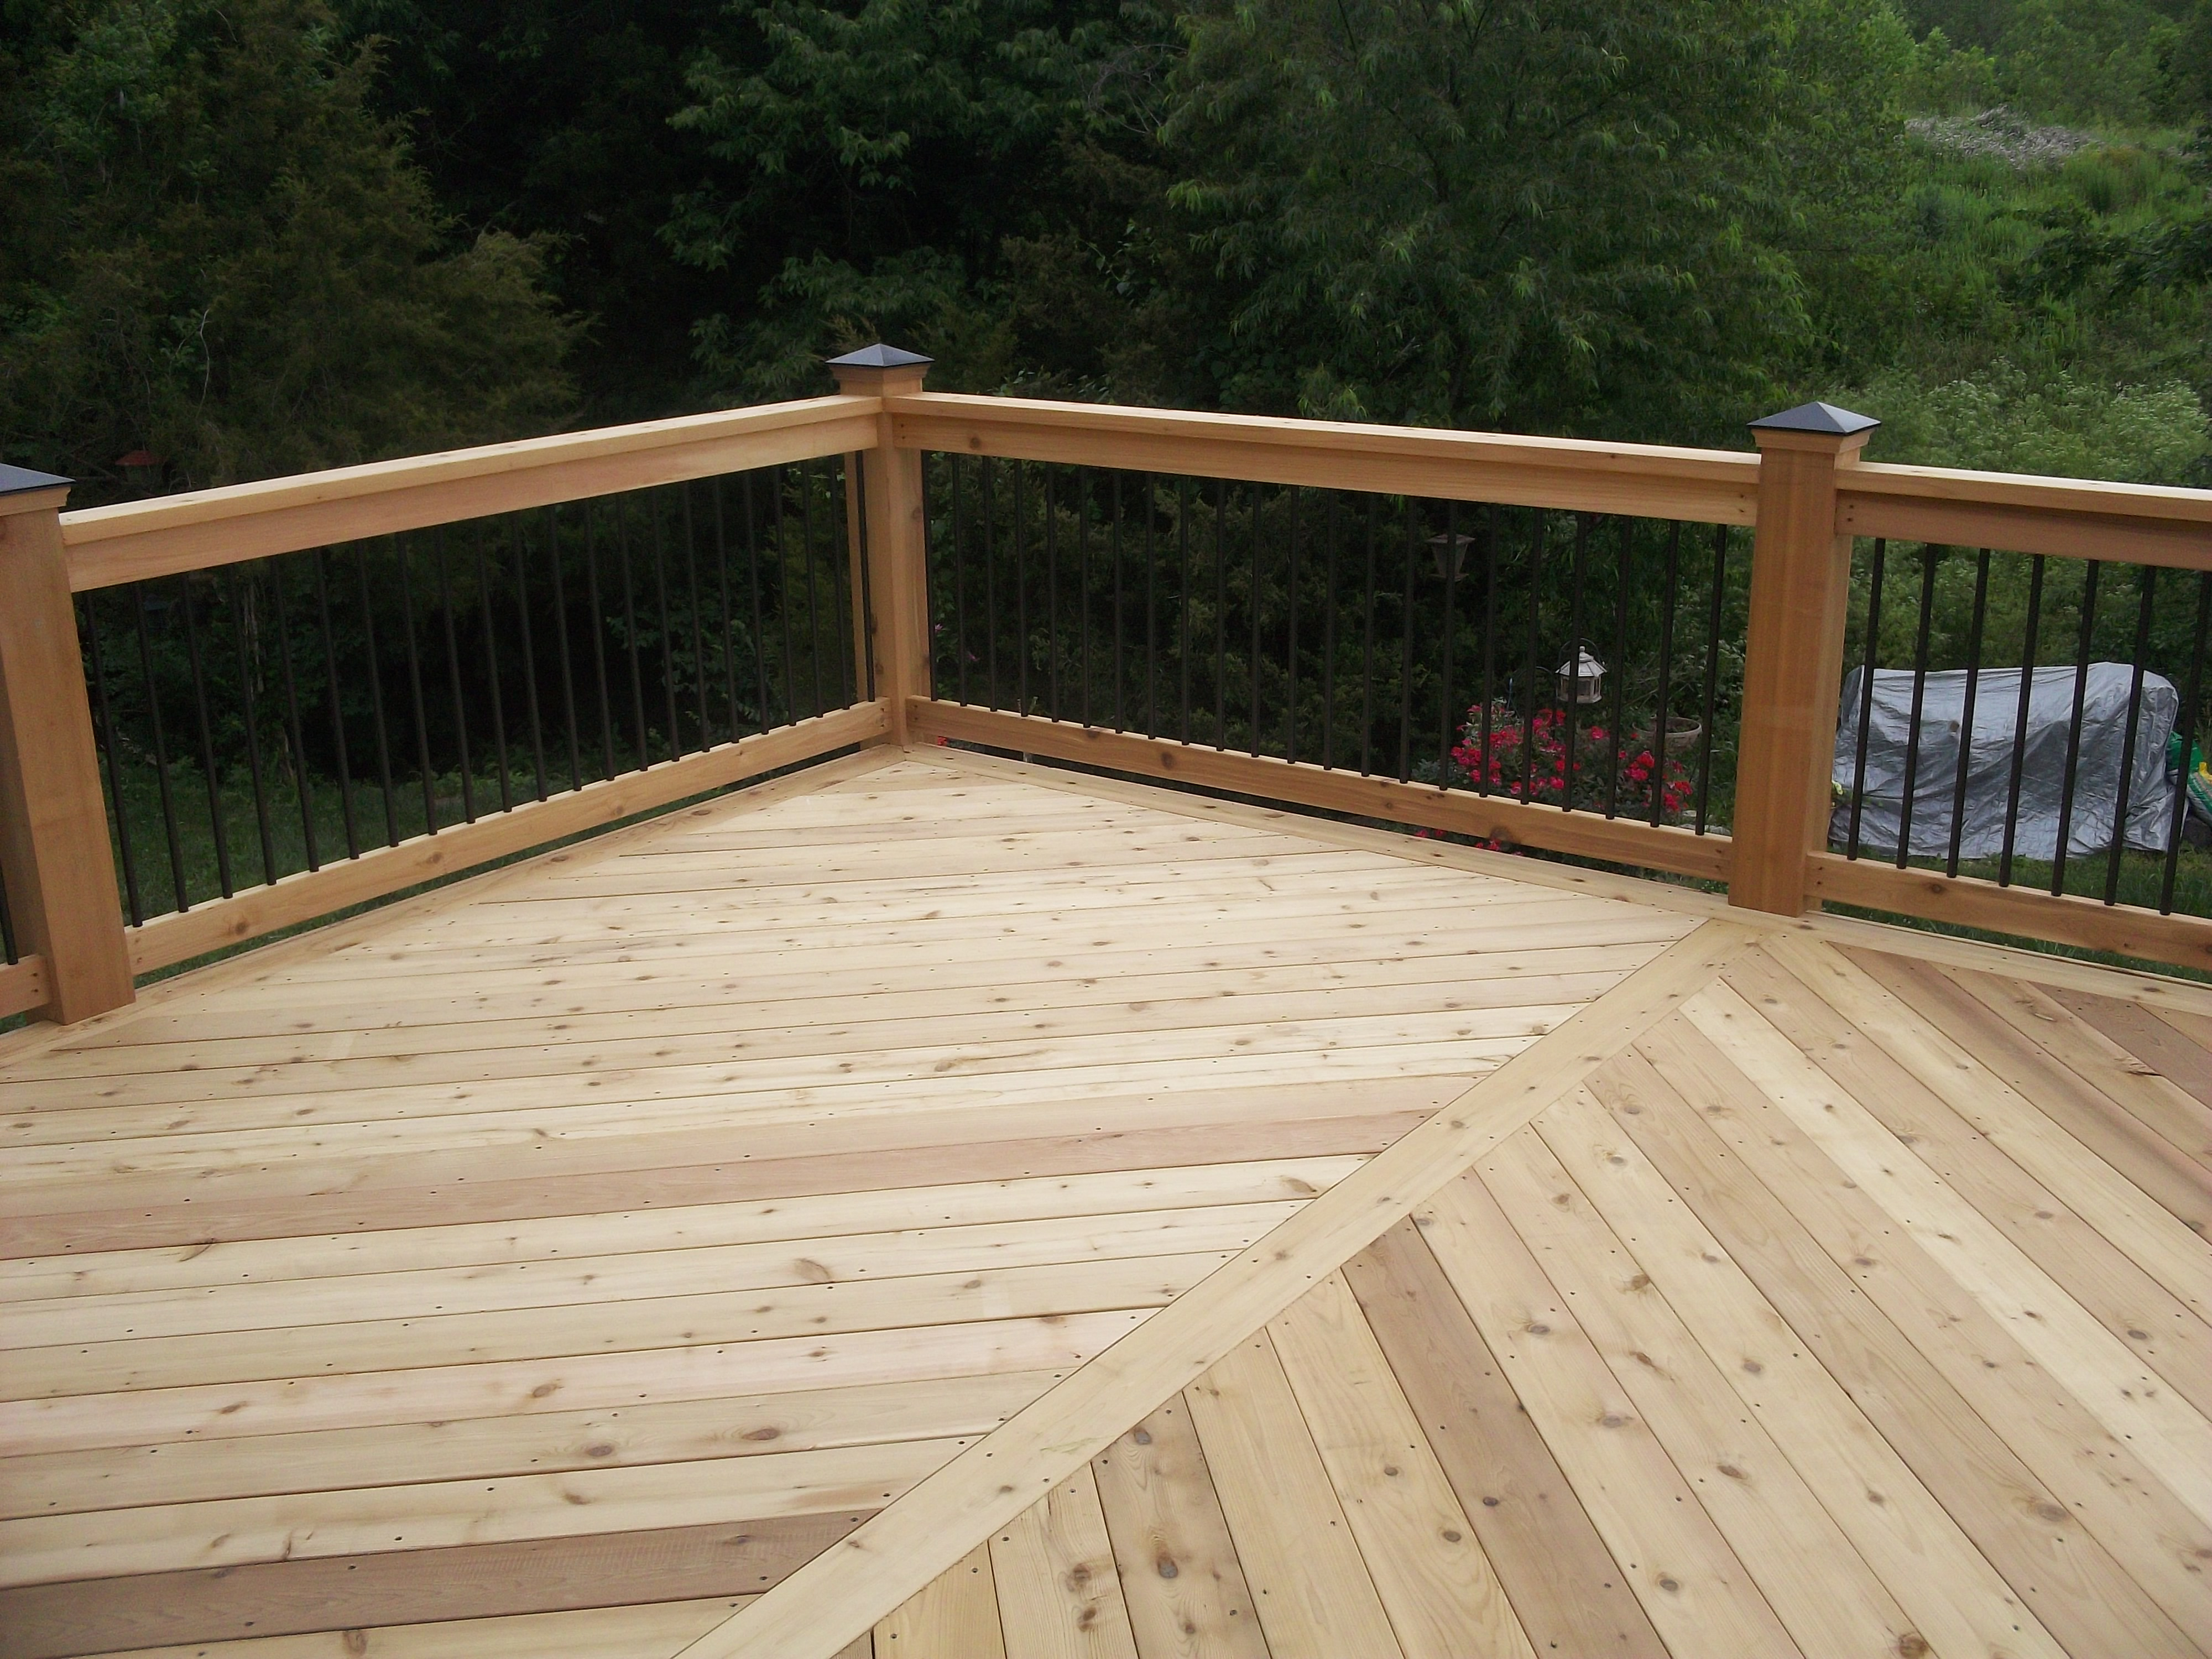 Chesterfield Fence Deck Company Cedar Decking Throughout Dimensions 4000 X 3000